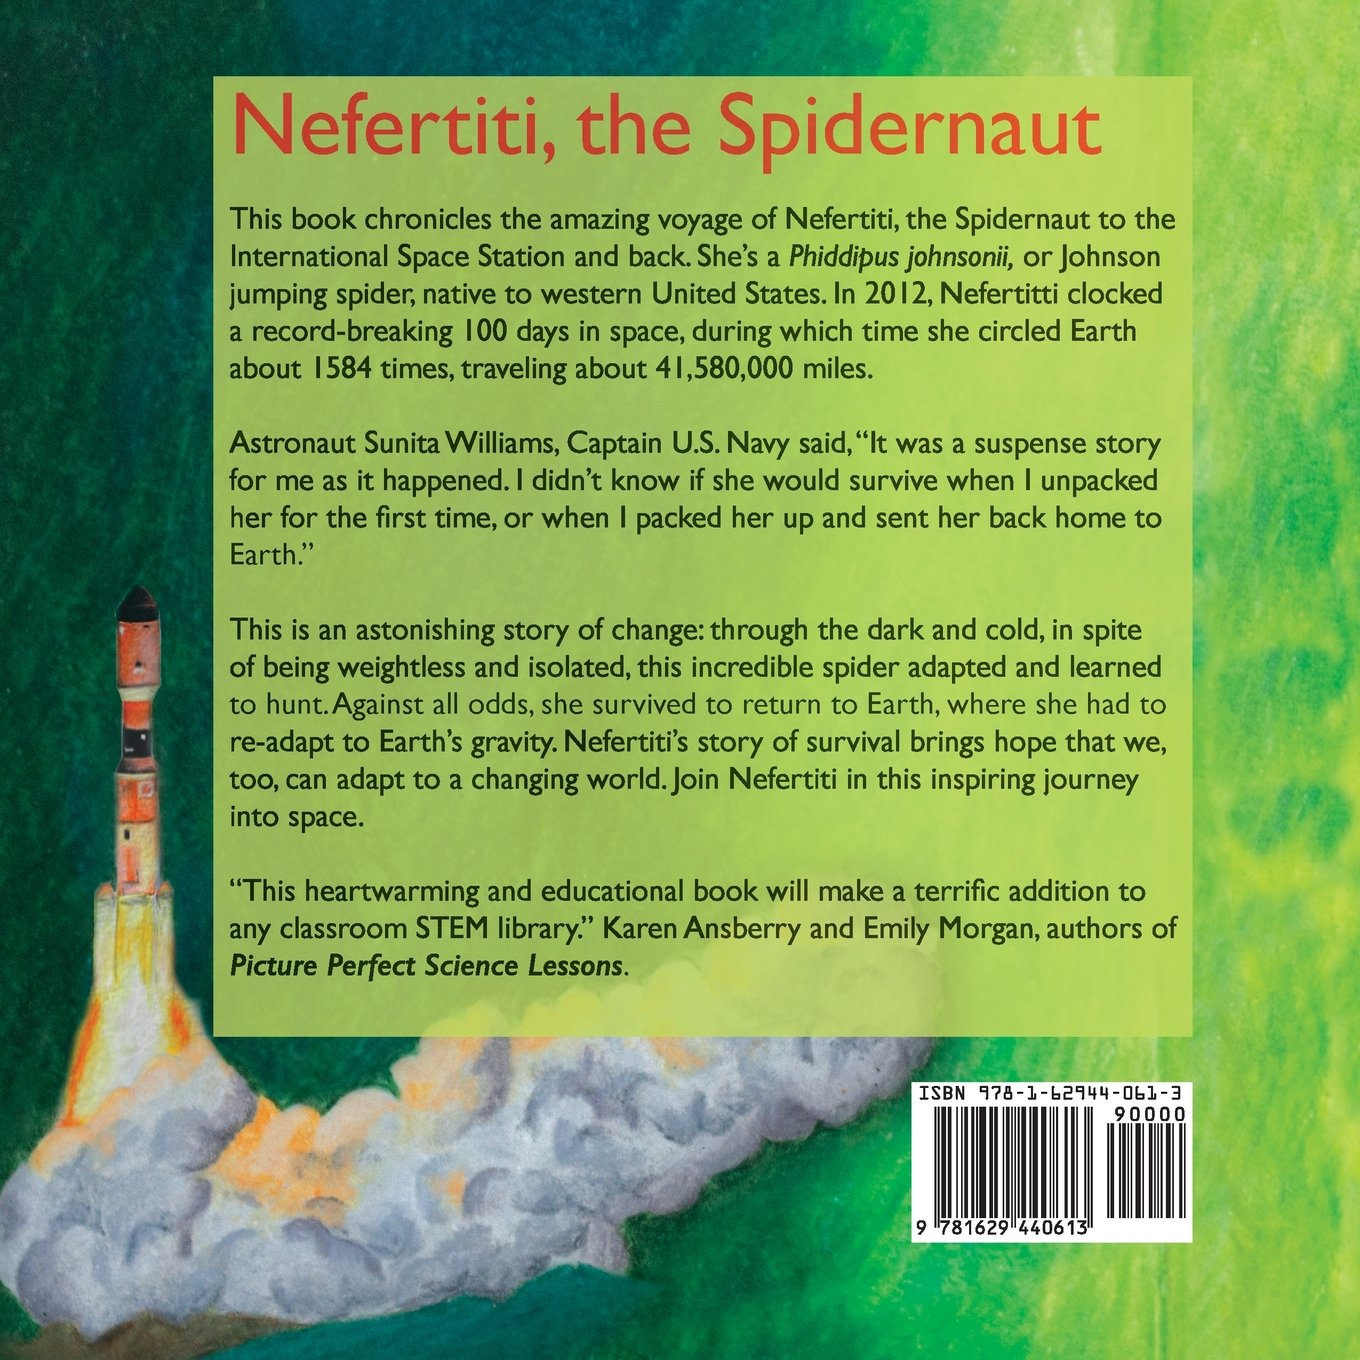 nefertiti the spidernaut the jumping spider who learned to hunt